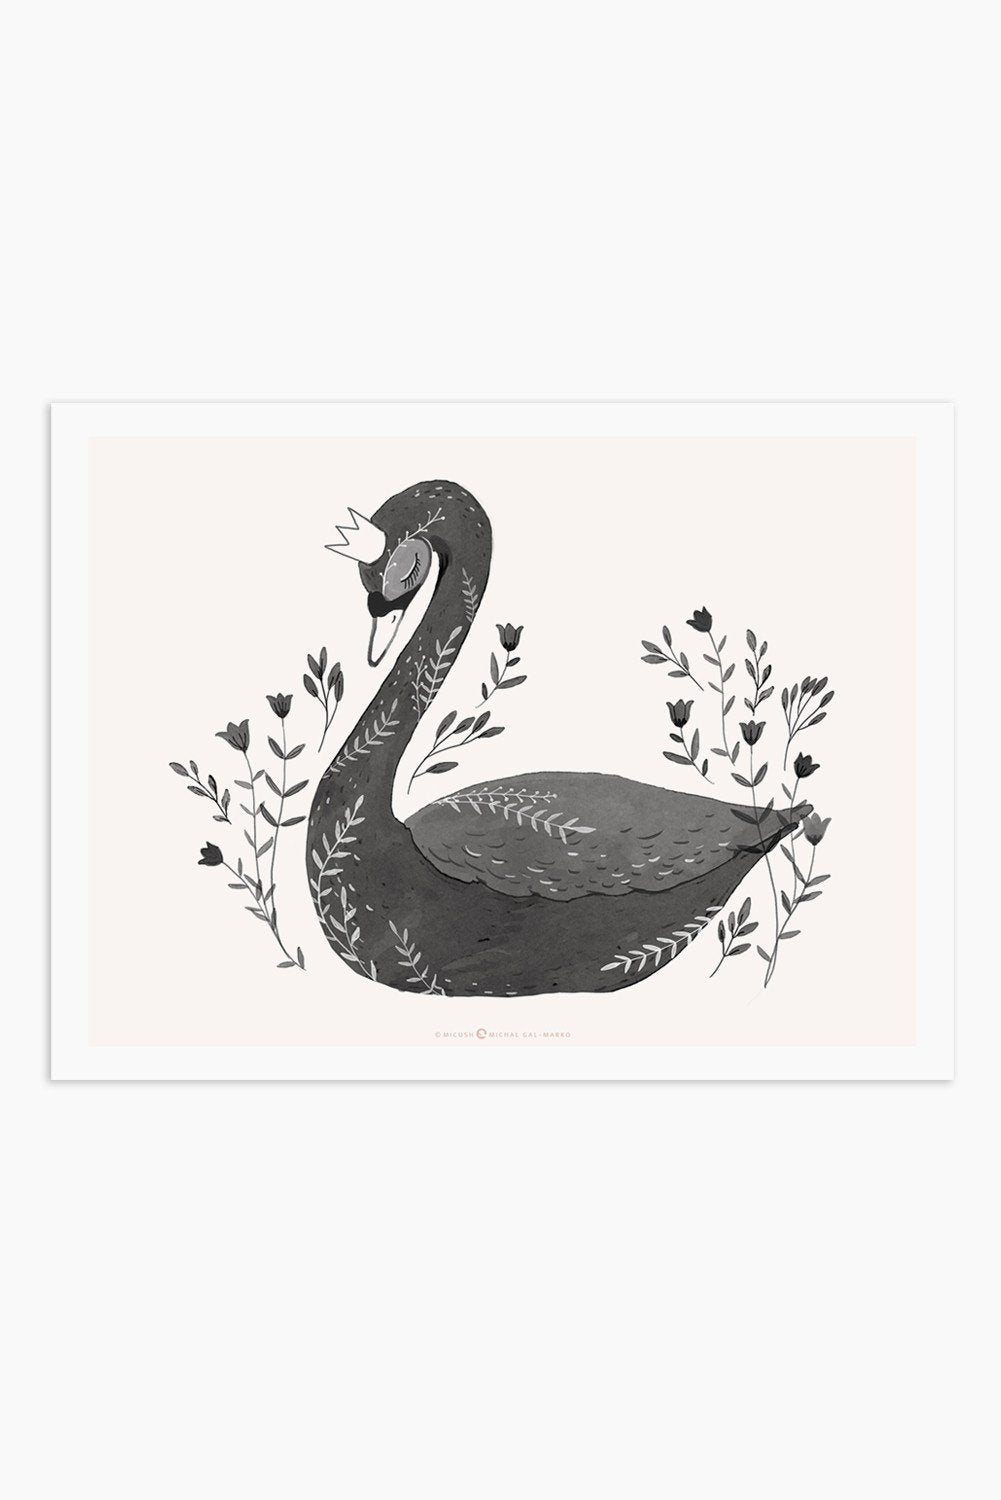 Art Print - Black Swan - Only available in Israel